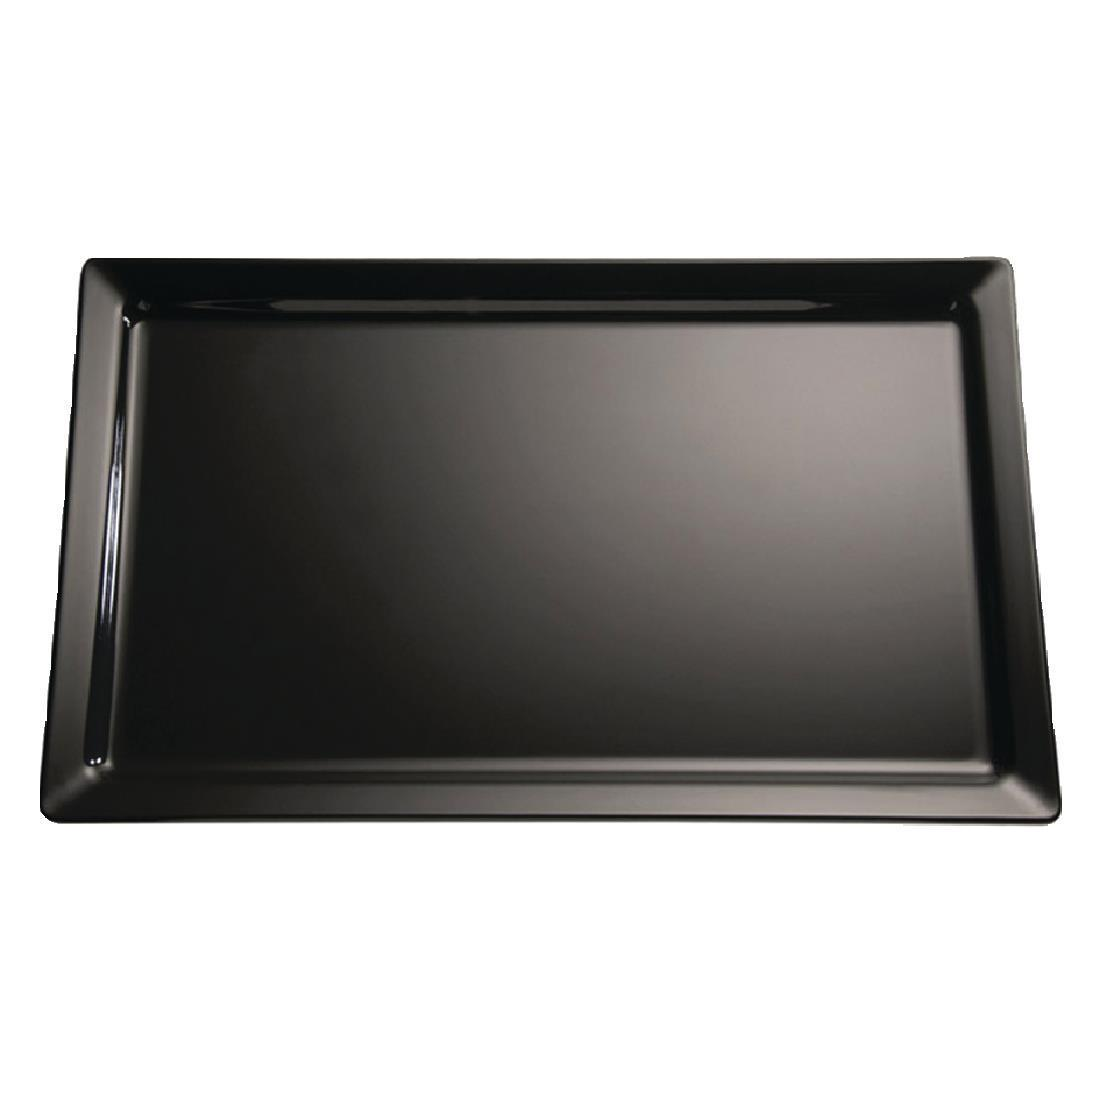 APS Pure Melamine Tray Black GN 1/3 - Each - GF125